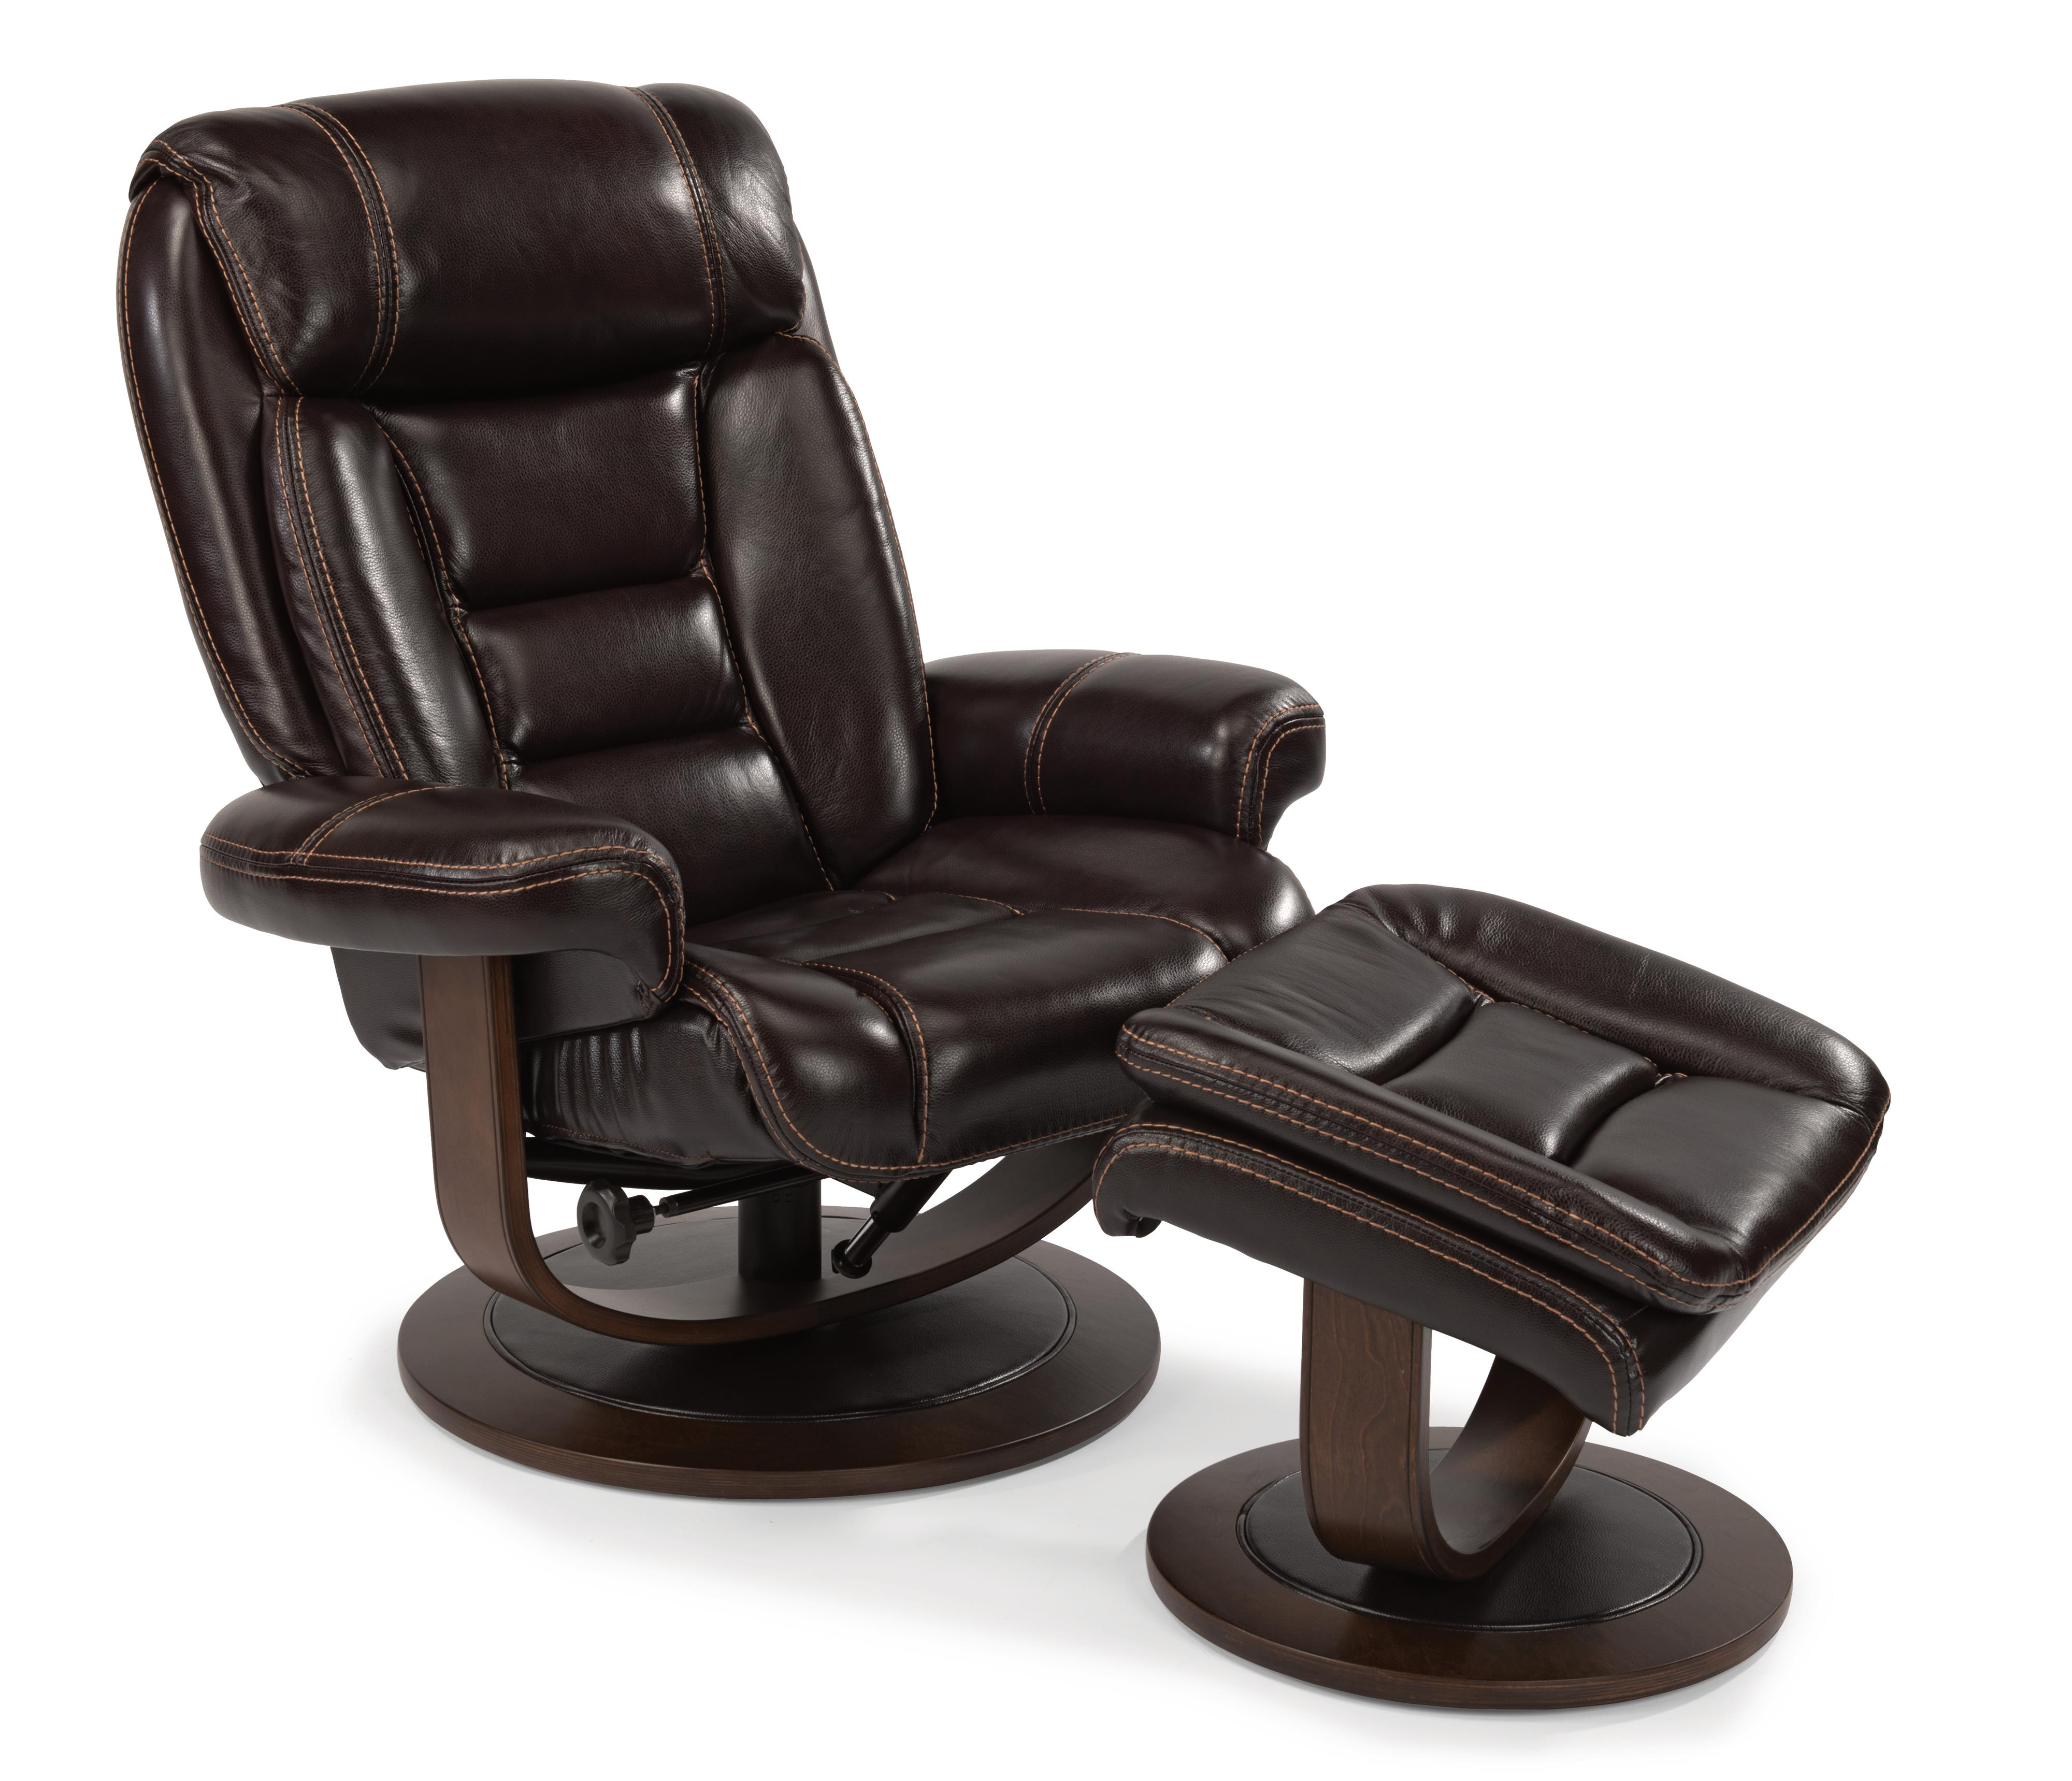 Flexsteel Latitudes-Hunter Reclining Chair and Ottoman Set - Item Number: 1455-CO-585-72